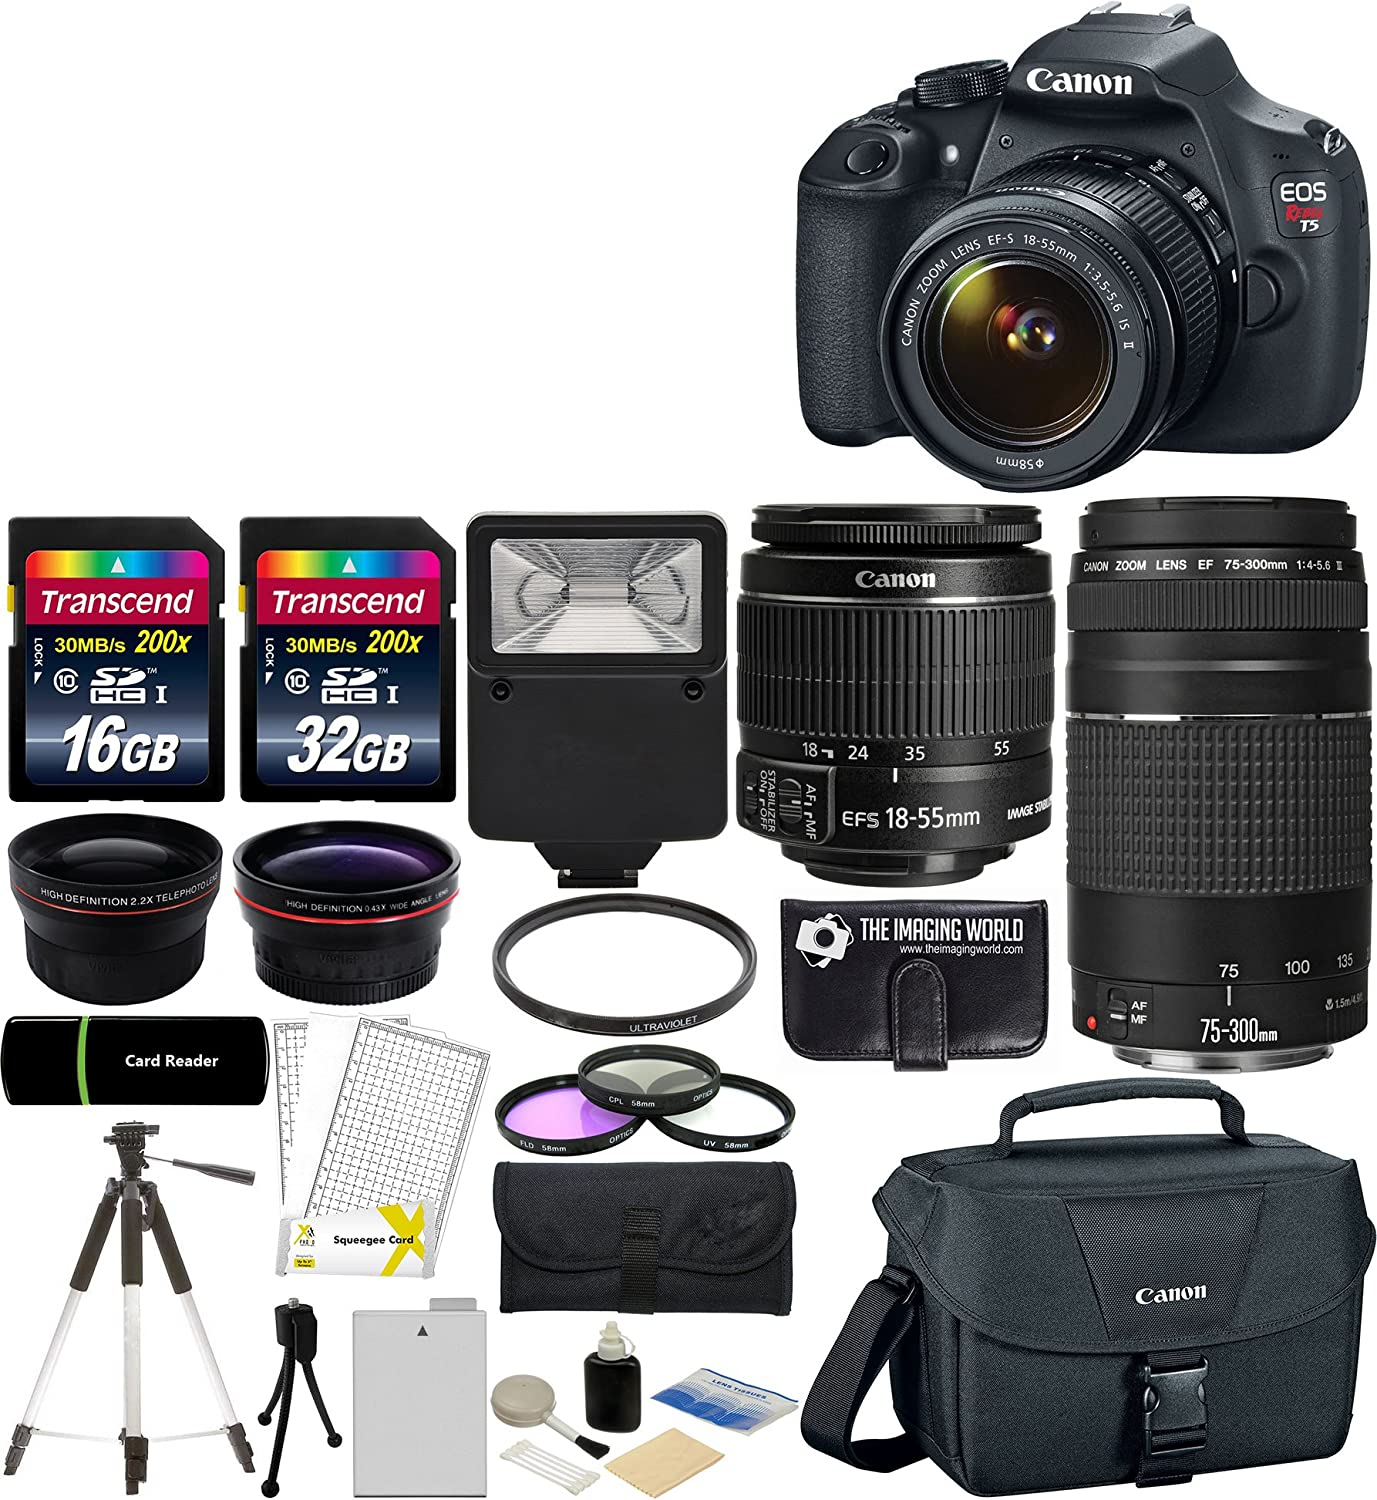 Canon EOS Rebel T5 18MP EF-S Digital SLR Camera USA warranty with canon EF-S 18-55mm f/3.5-5.6 IS II Zoom Lens & EF 75 ..